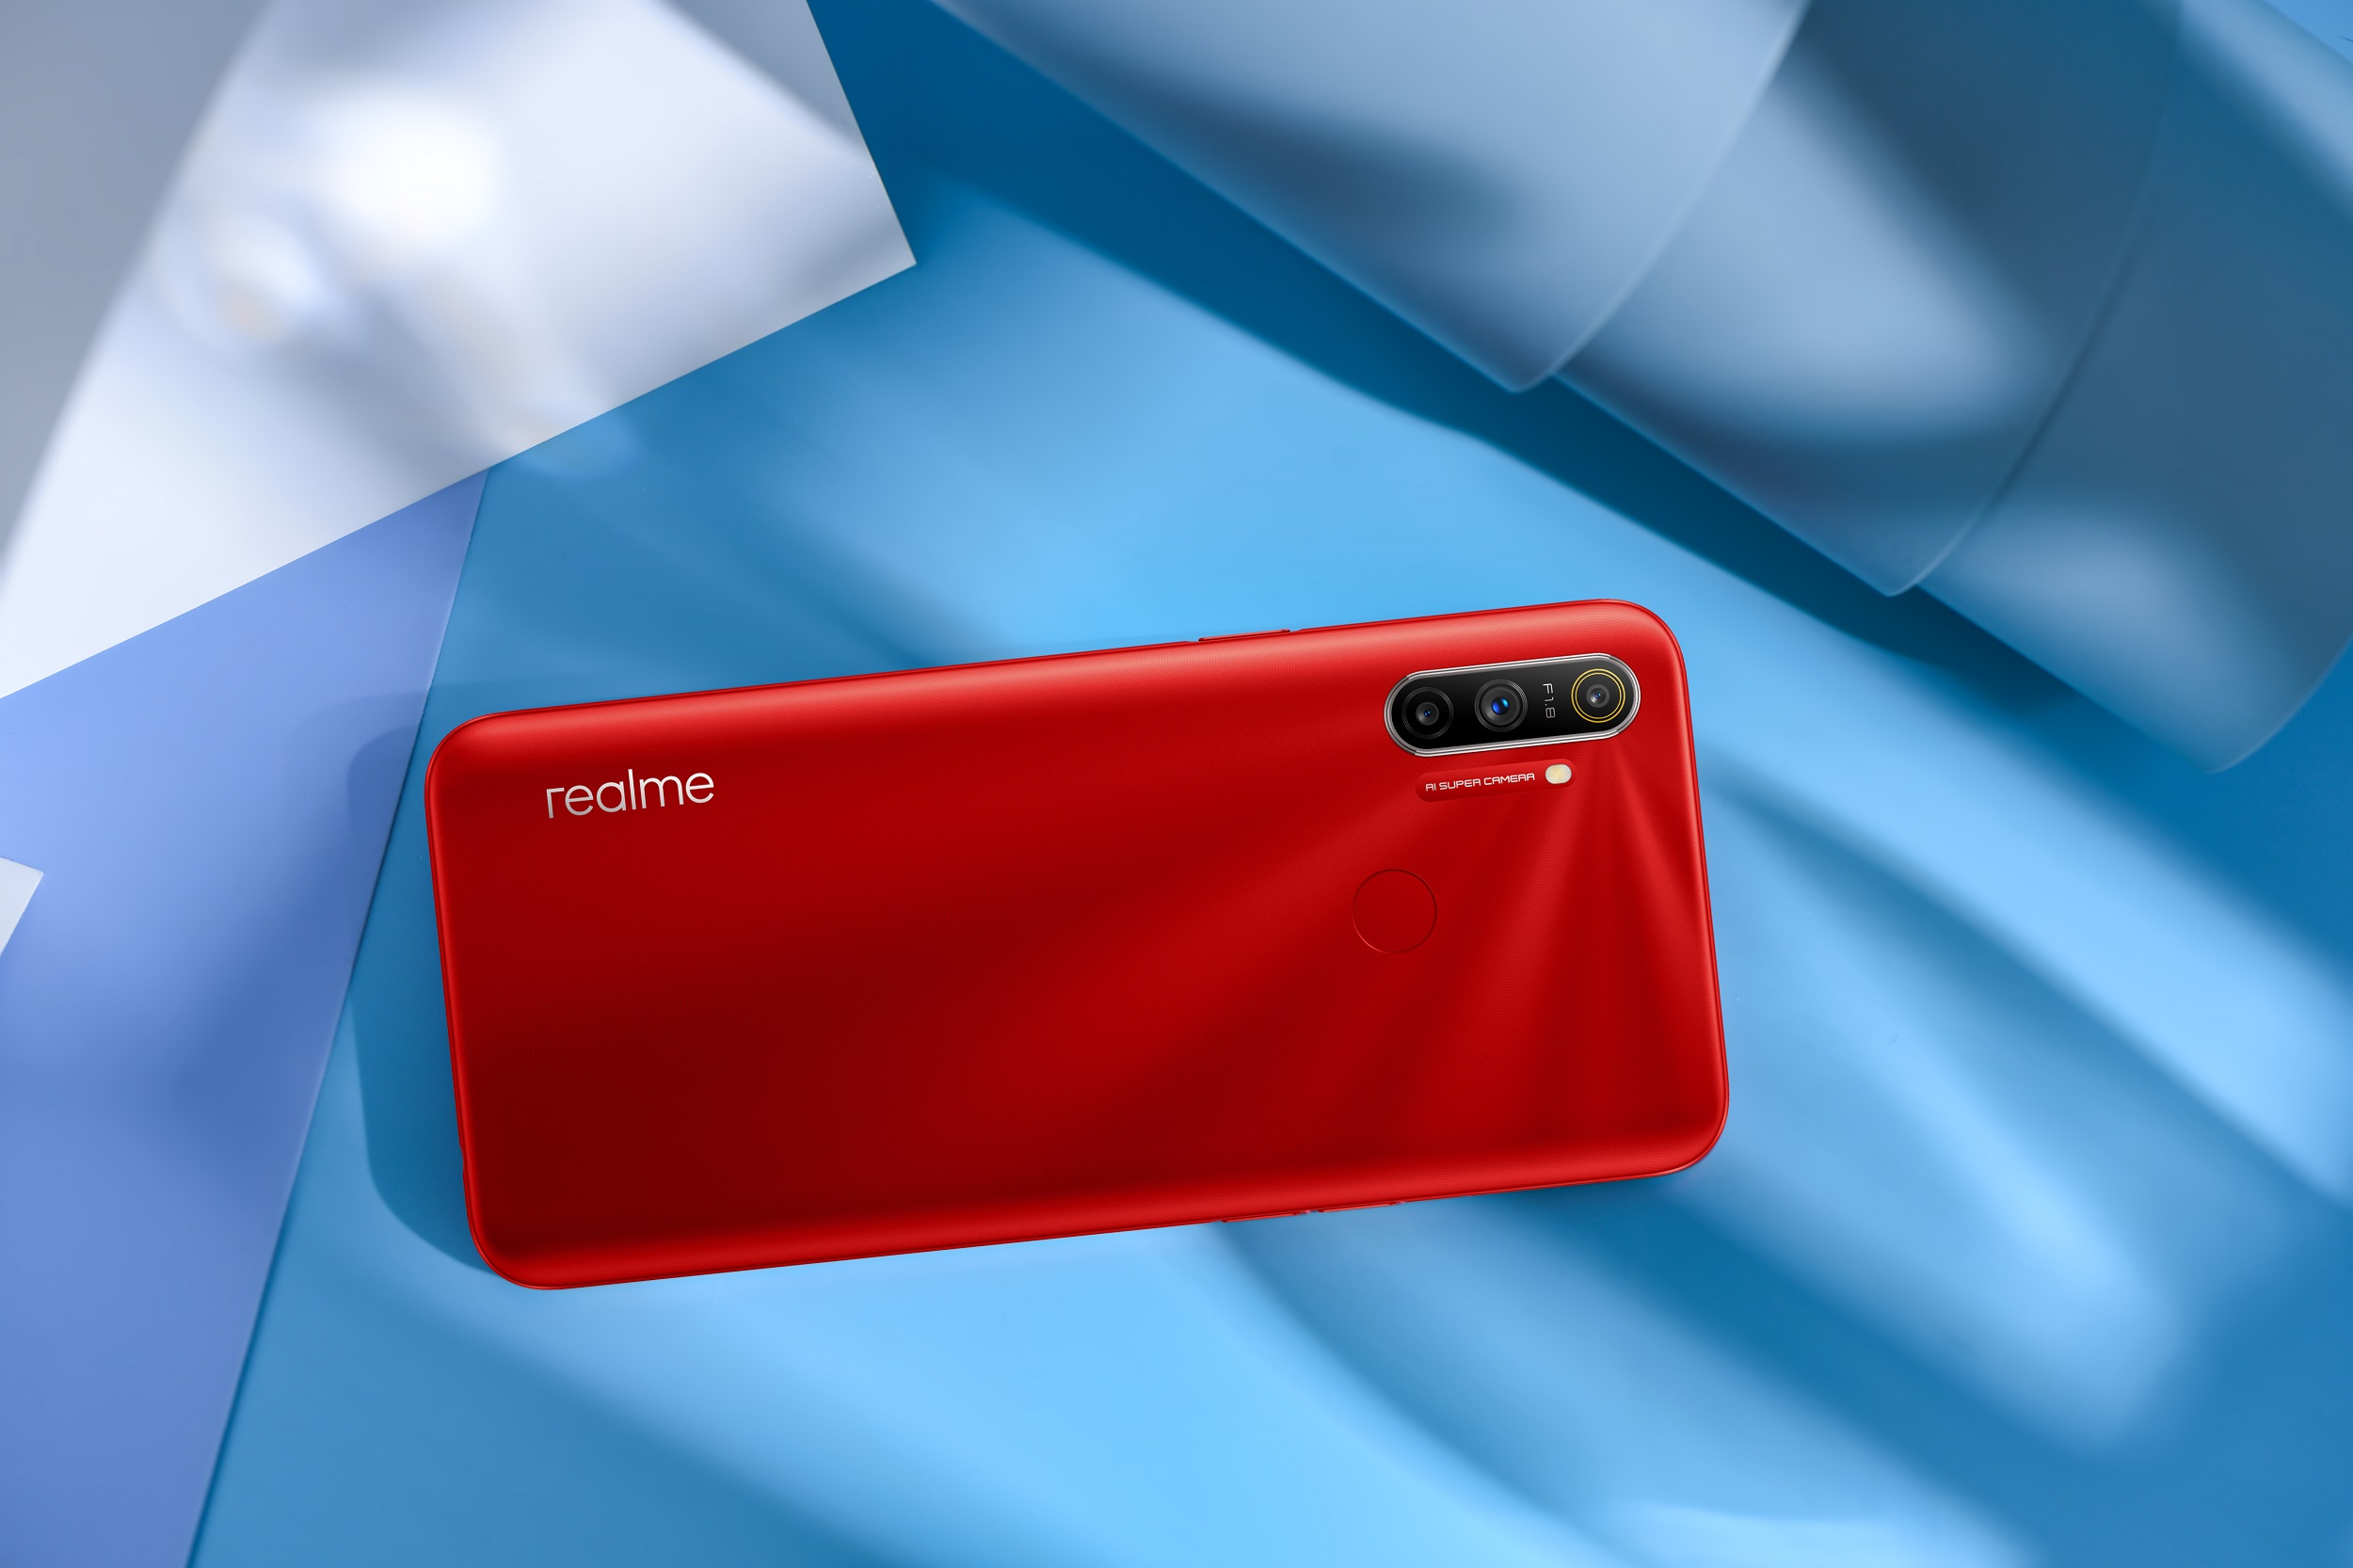 realme C3 and realme 6i Officially Takes Over the Egyptian Market with Their Great Value and Top Quality